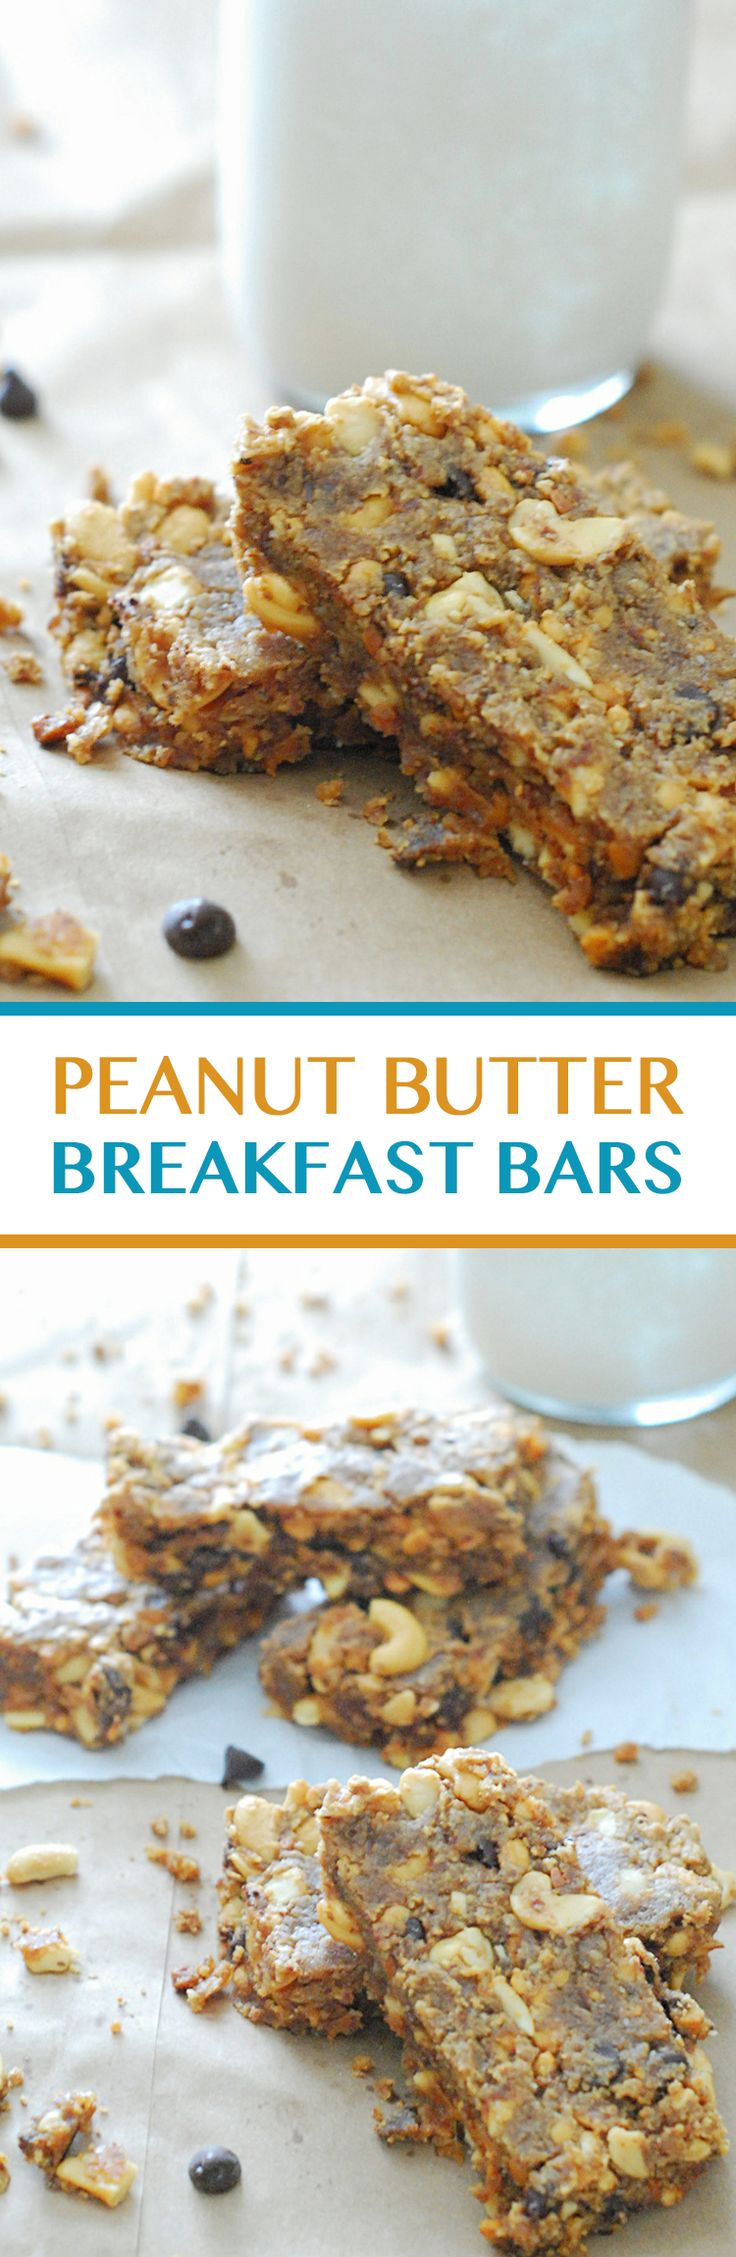 Peanut Butter Breakfast Bars - So good with a cup of coffee or glass of almond milk! (Low Carb, No Sugar Added)